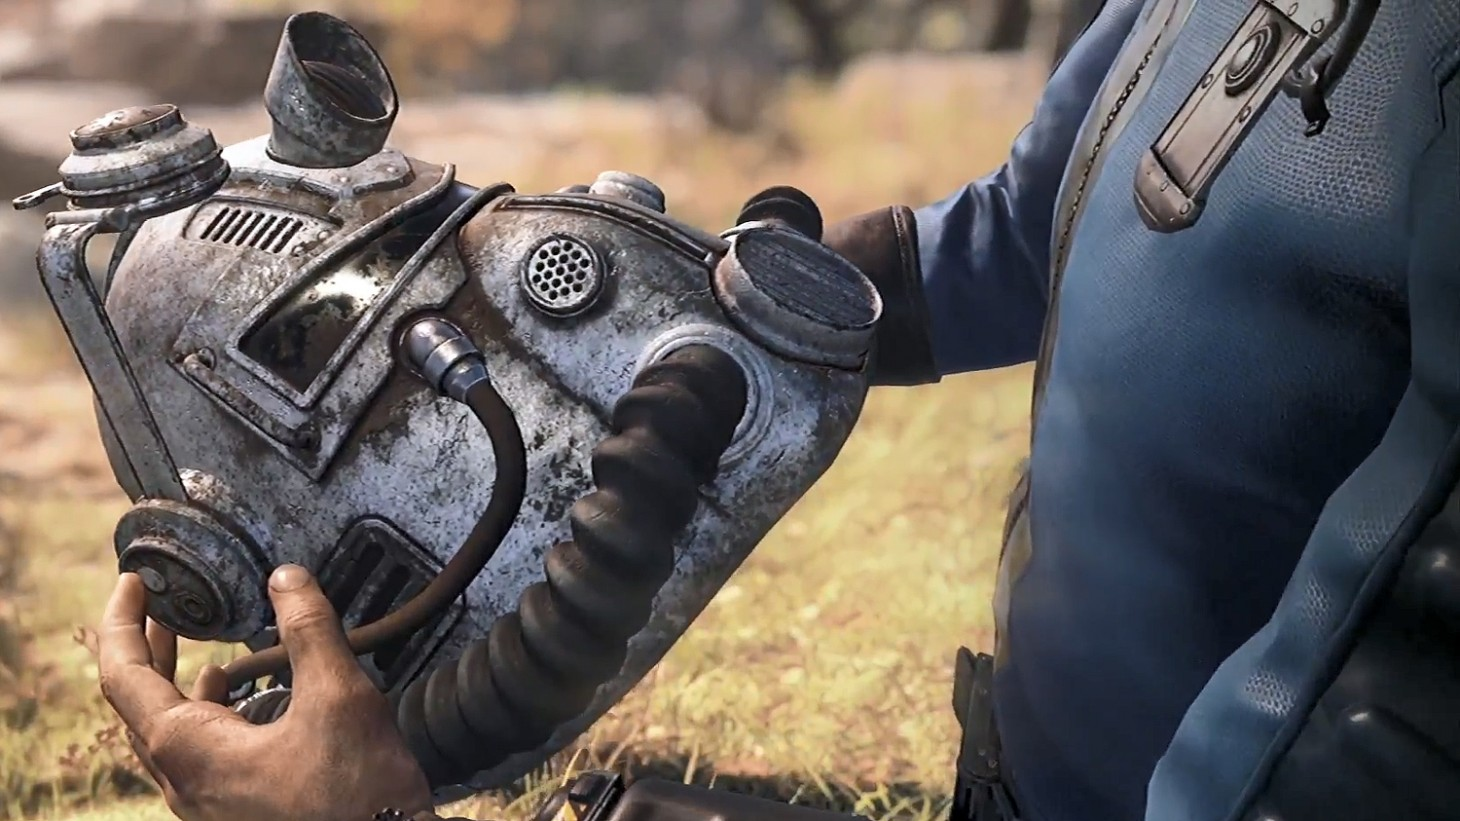 photo of Fallout 76 still finds new ways to infuriate players, this time with a $7 fridge image